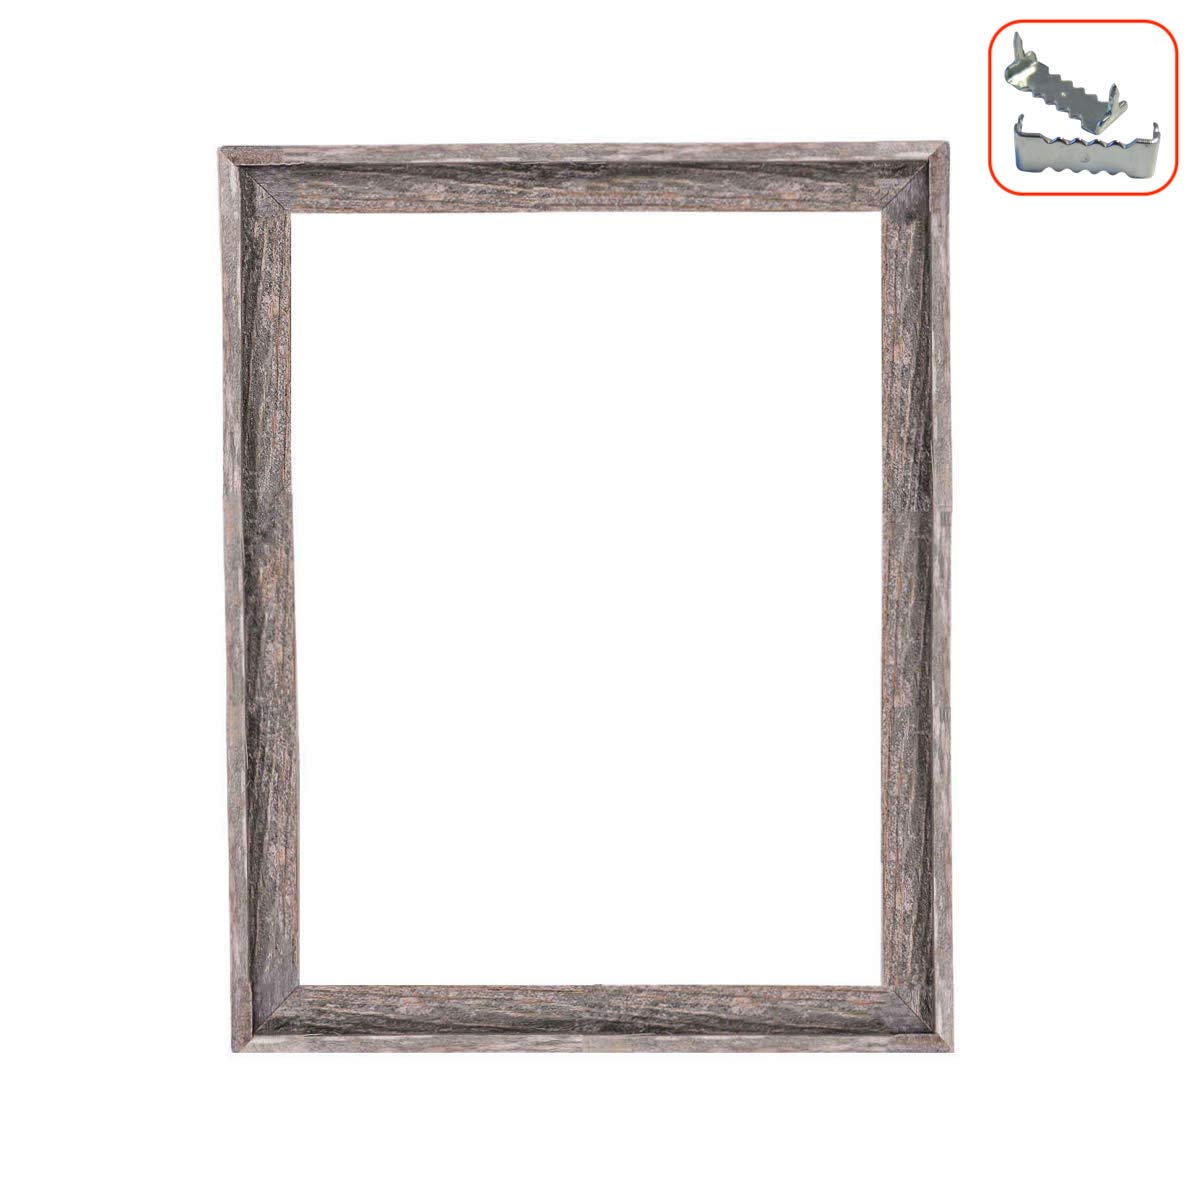 BarnwoodUSA Rustic Farmhouse Open Signature Picture Frame - Our 18x24 Open Picture Frame can be used DIY projects | Crafted From 100% Recycled Reclaimed Wood | No Assembly Required